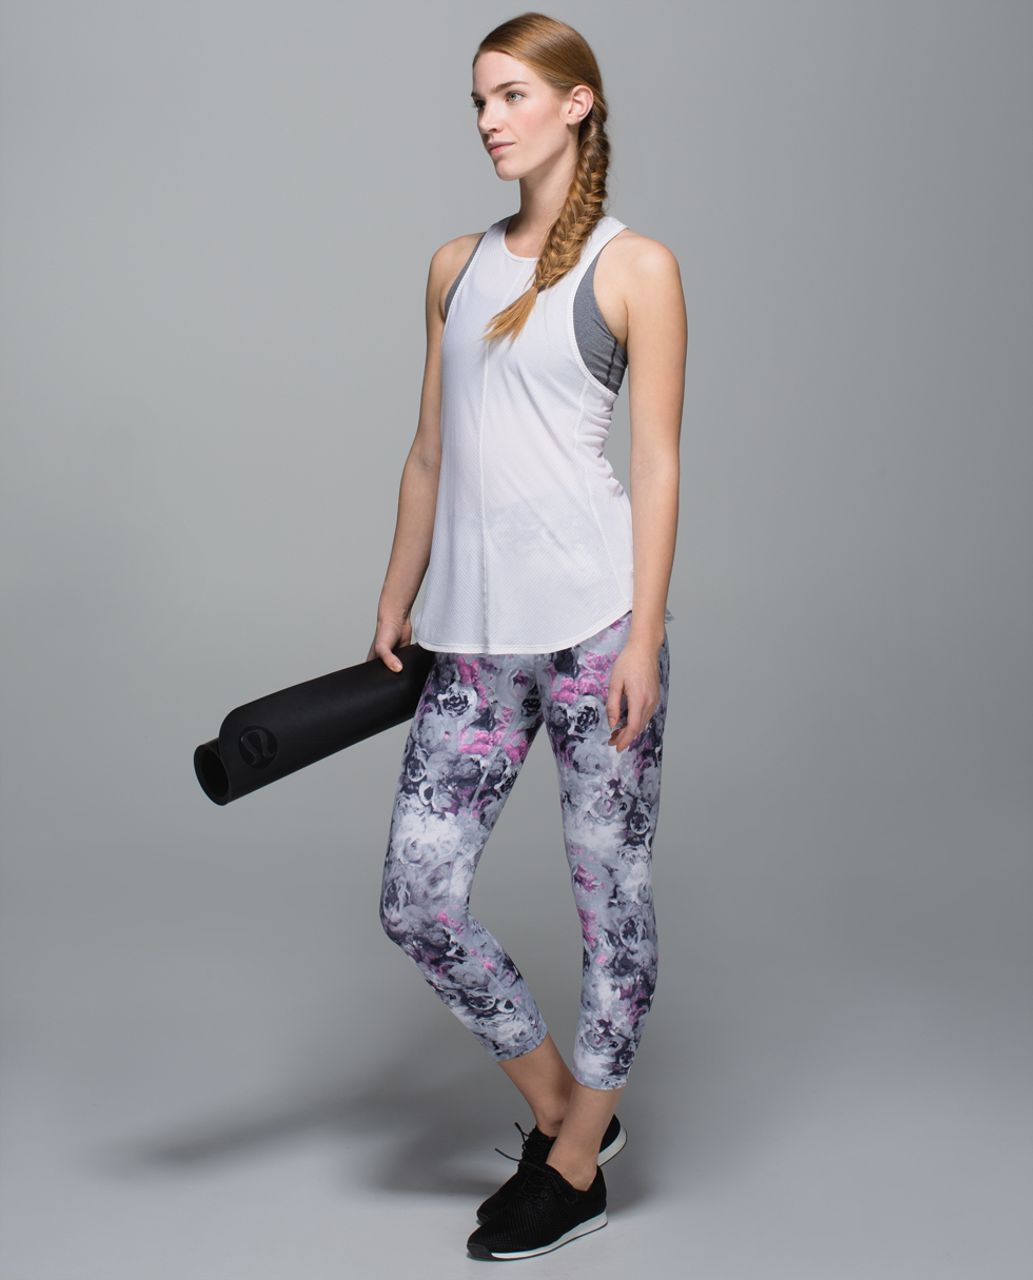 Lululemon Wunder Under Crop II *Full-On Luon (Roll Down) - Moody Mirage White Deep Navy